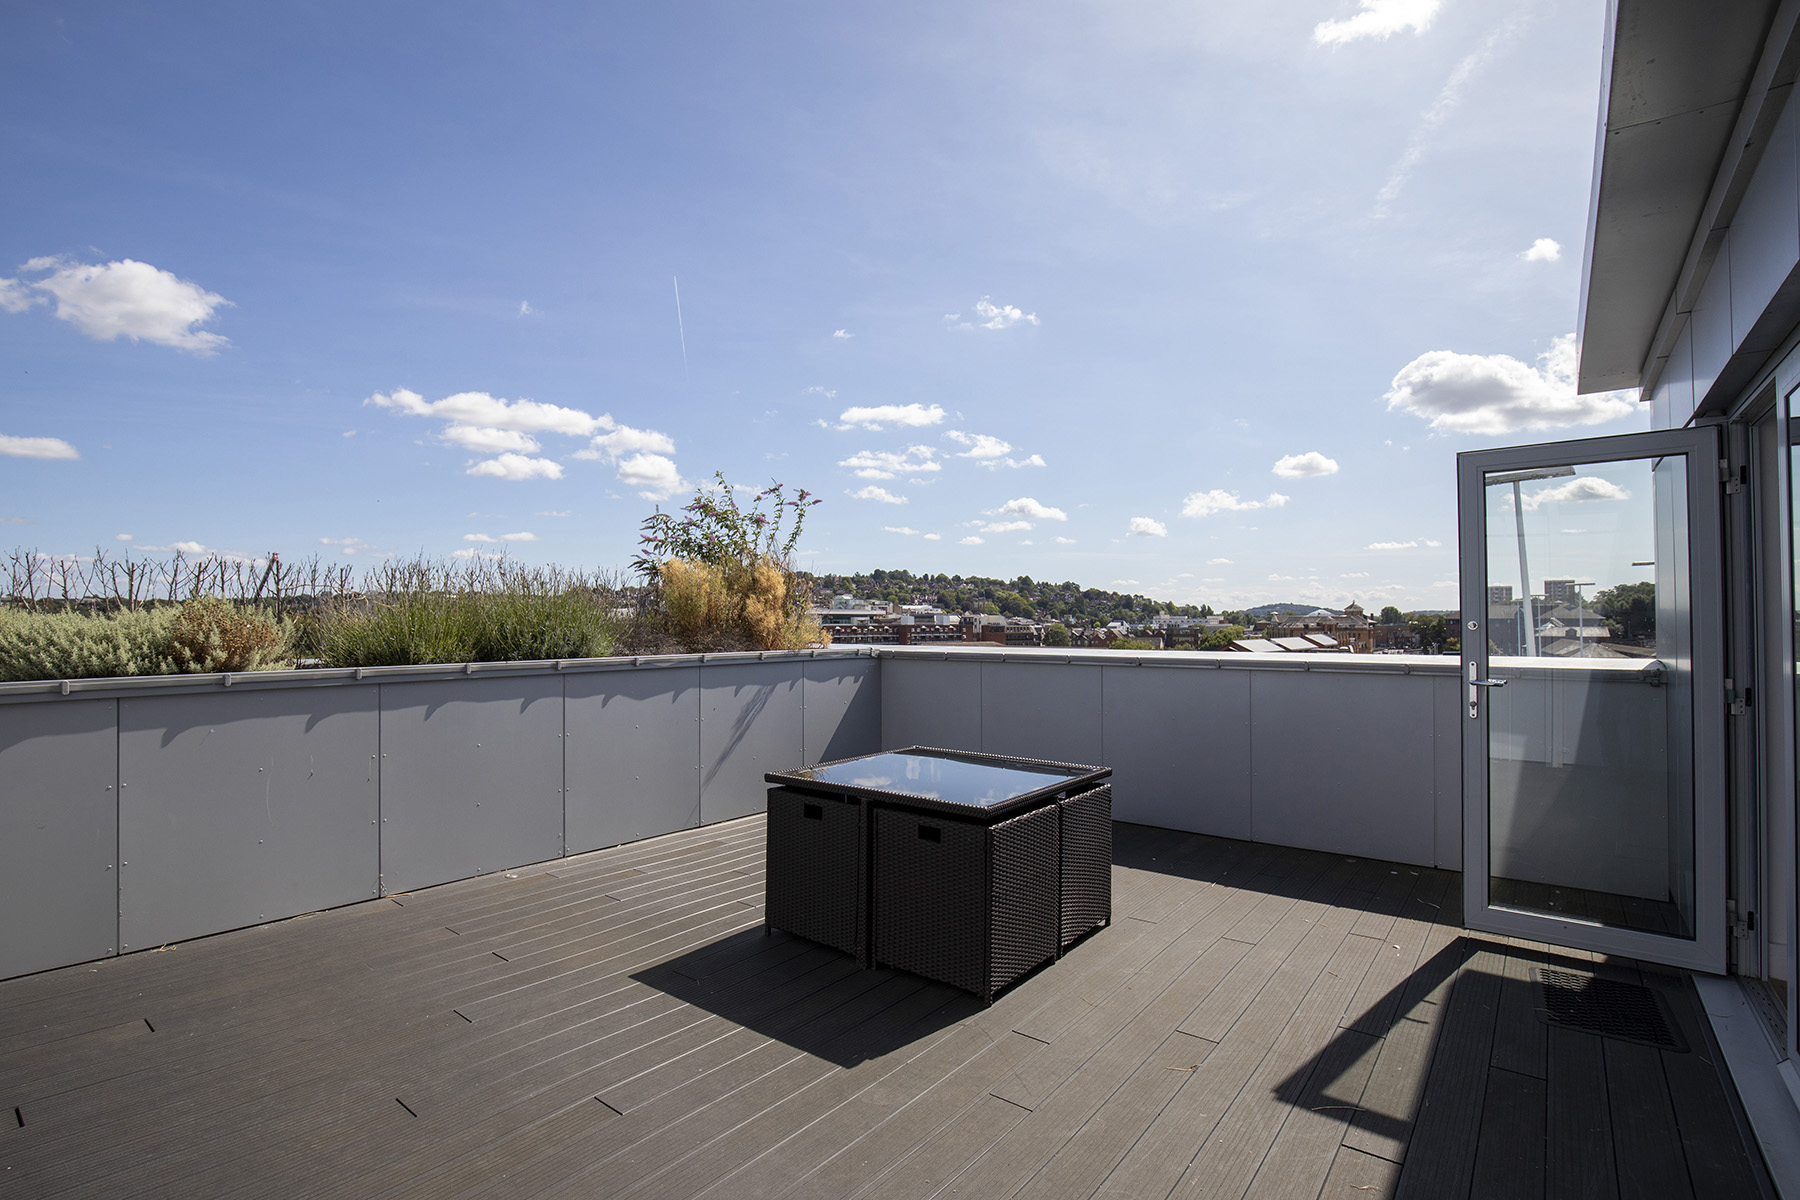 Terrace at Station View Apartments